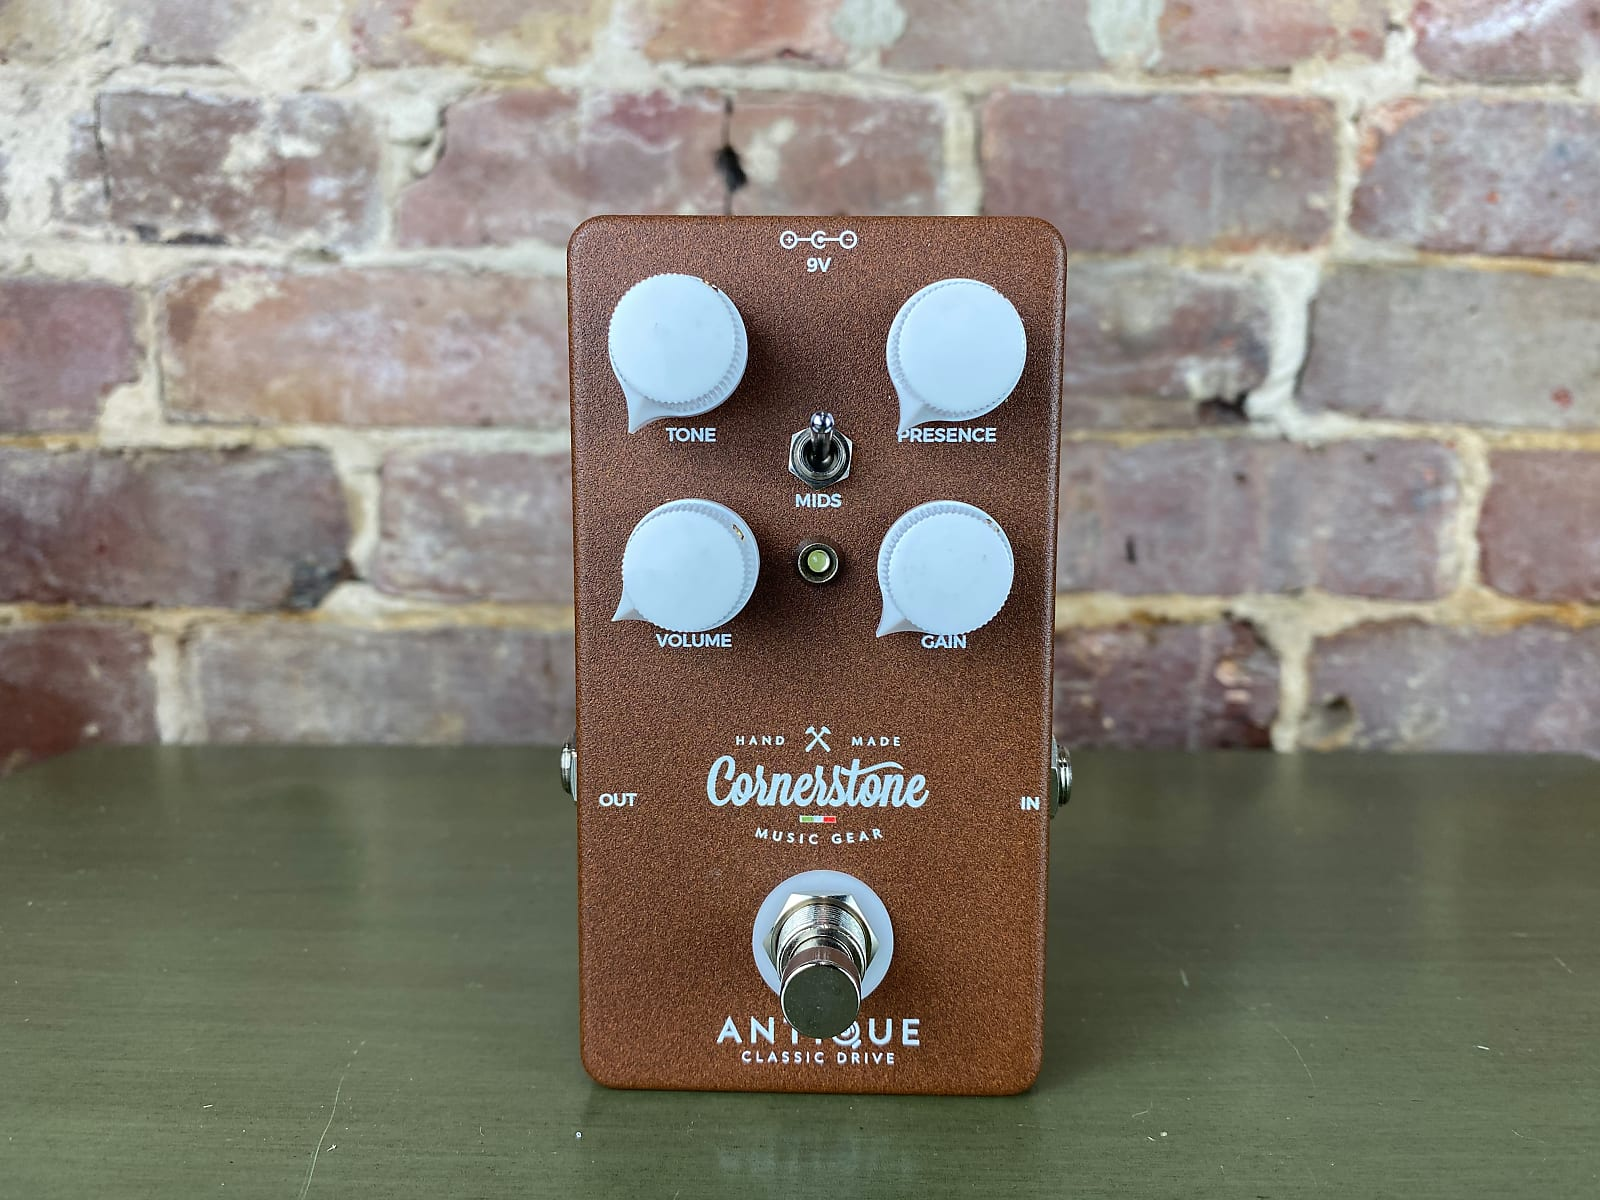 Cornerstone Music Gear Antique Classic Drive *Authorized Dealer* FREE 2-Day Shipping!